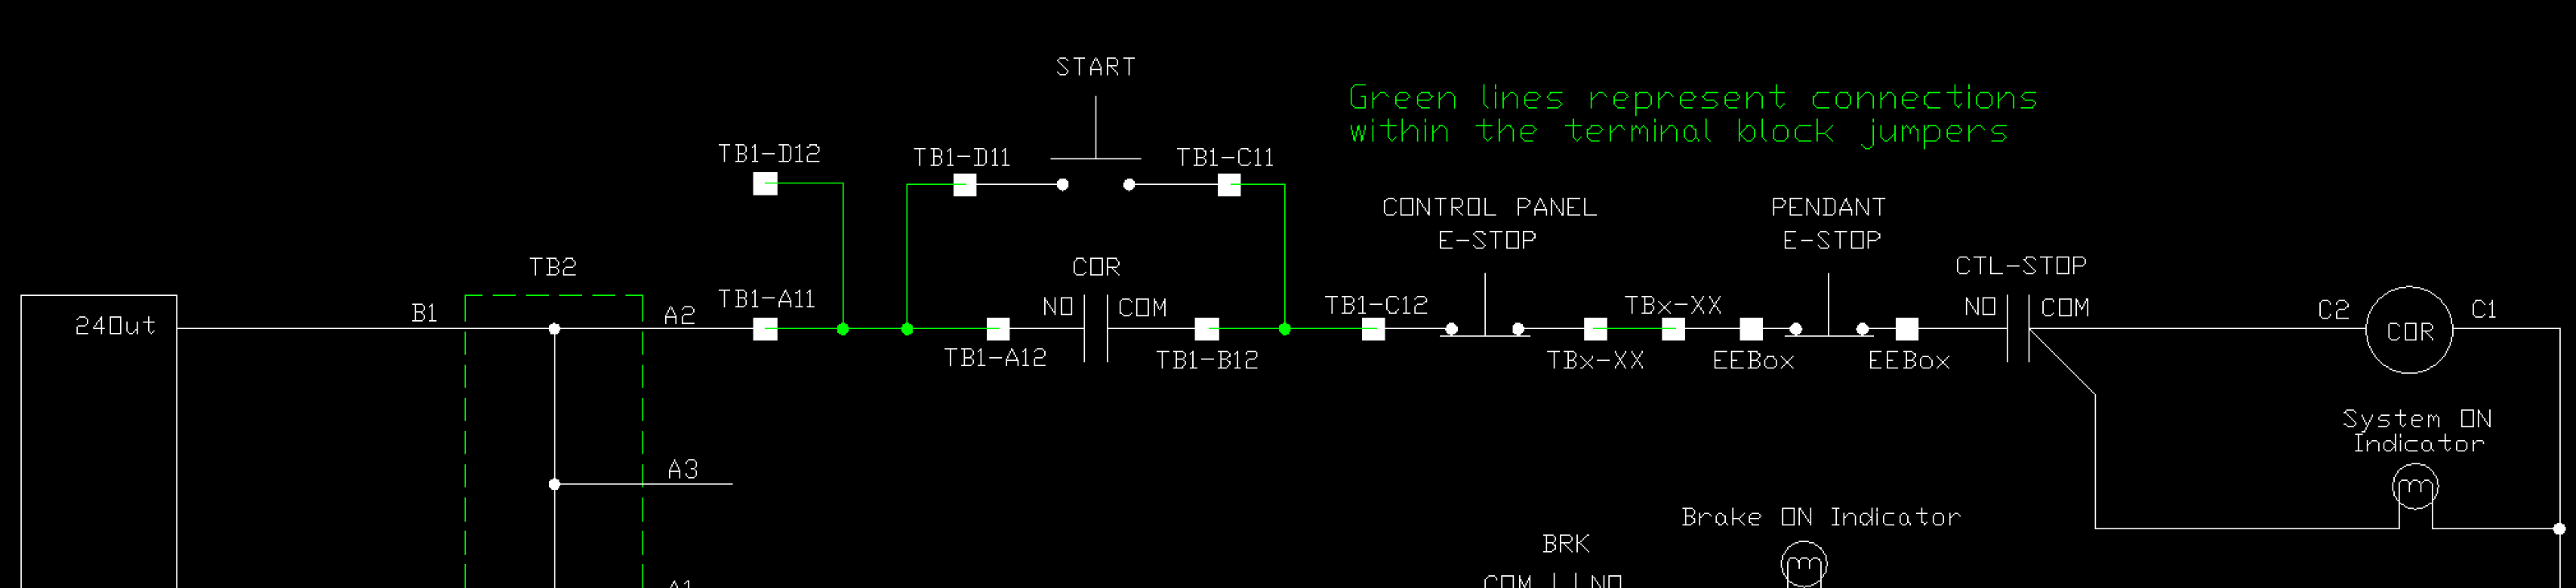 VistaCNC P4-SE pendant stopped working - Page 2 - LinuxCNC on e stop symbol drawing, e stop electric symbols, 3 wire start stop diagram, block diagram, e stop circuit example, basic emergency stop circuit diagram, e stop cable,